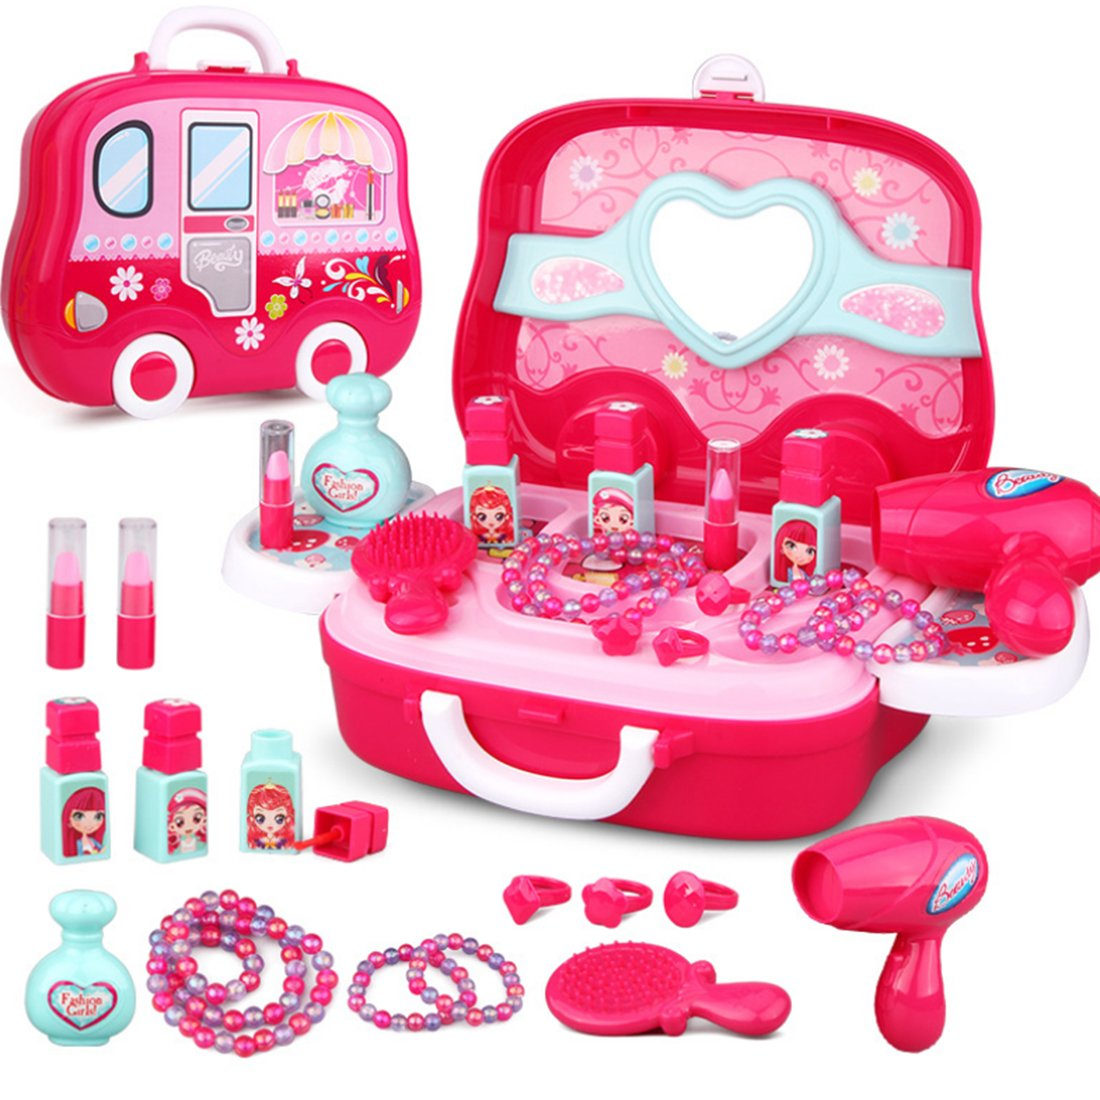 Pretend Makeup Kit, WOLFBUSH Cosmetic and Salon Beauty Playset with Carrying Box Dress Up Toy Vanities for Girls - Pink